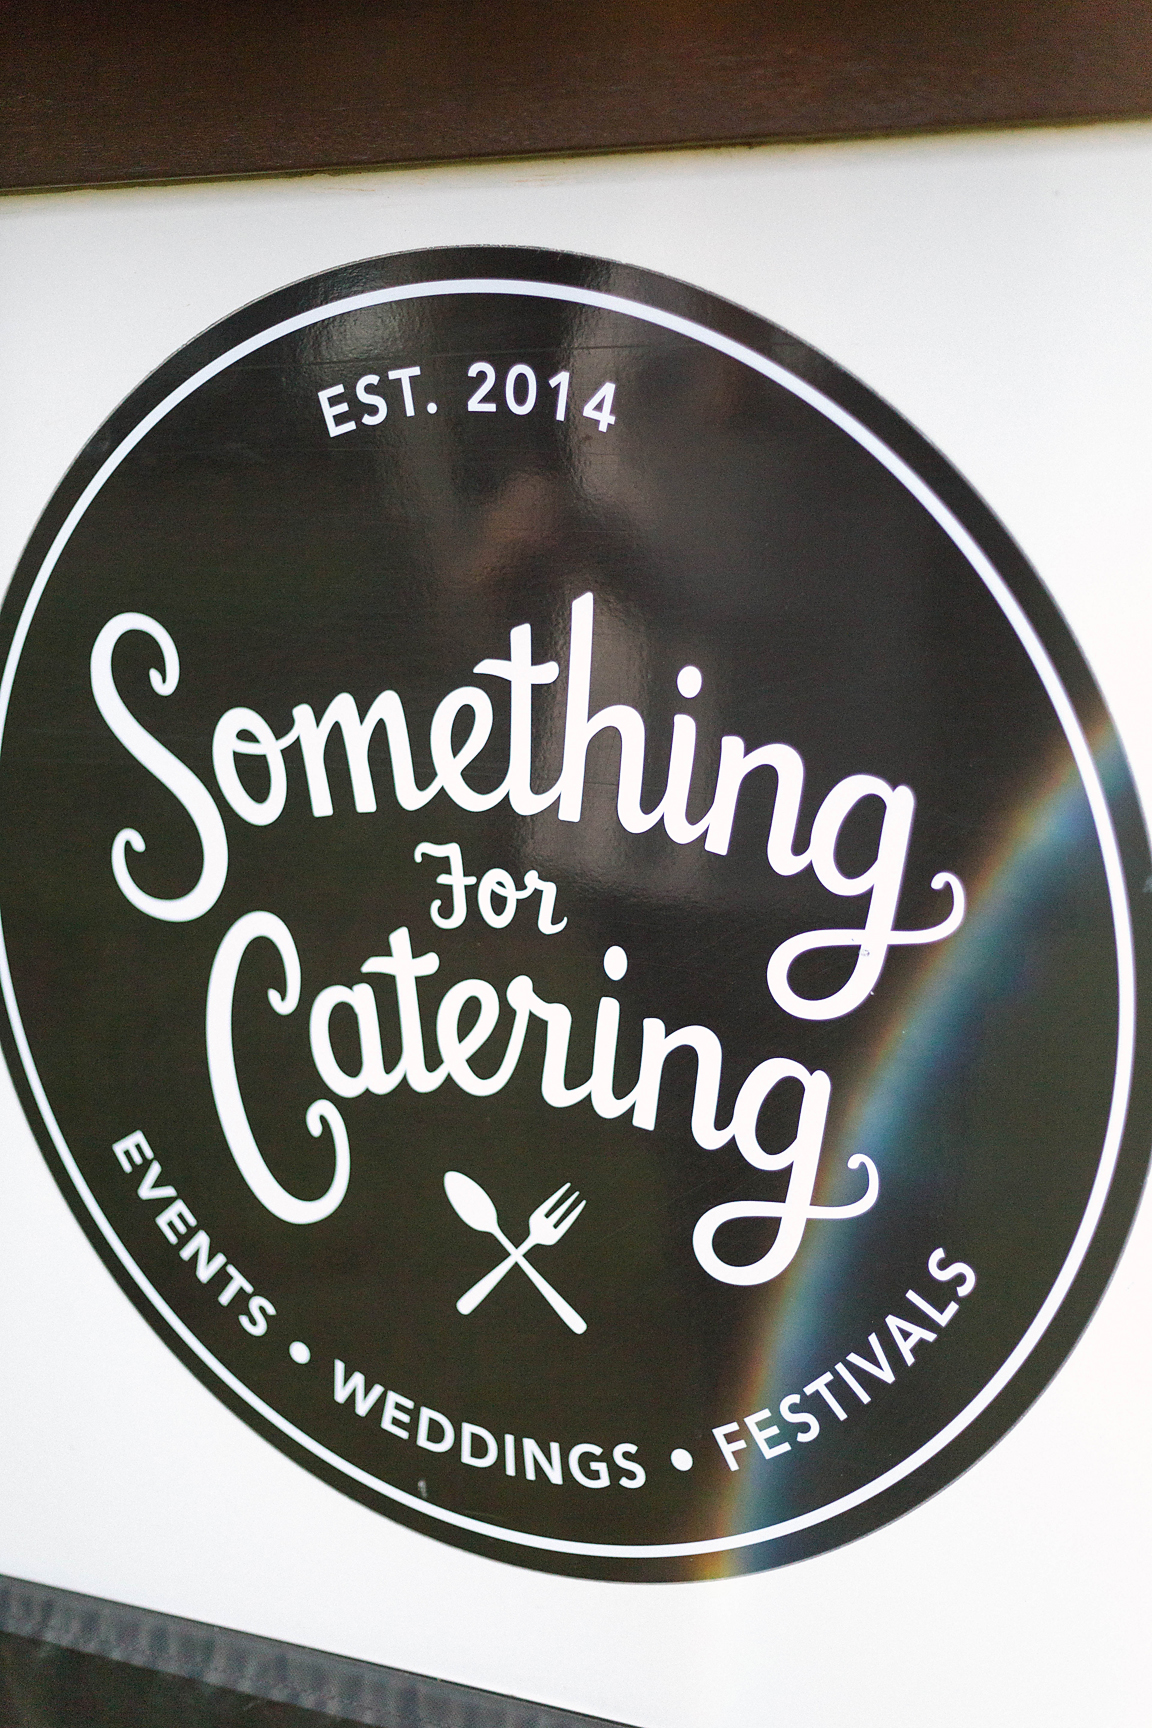 Catering by Something for Catering. Photography by Poppy & Sage Photography.